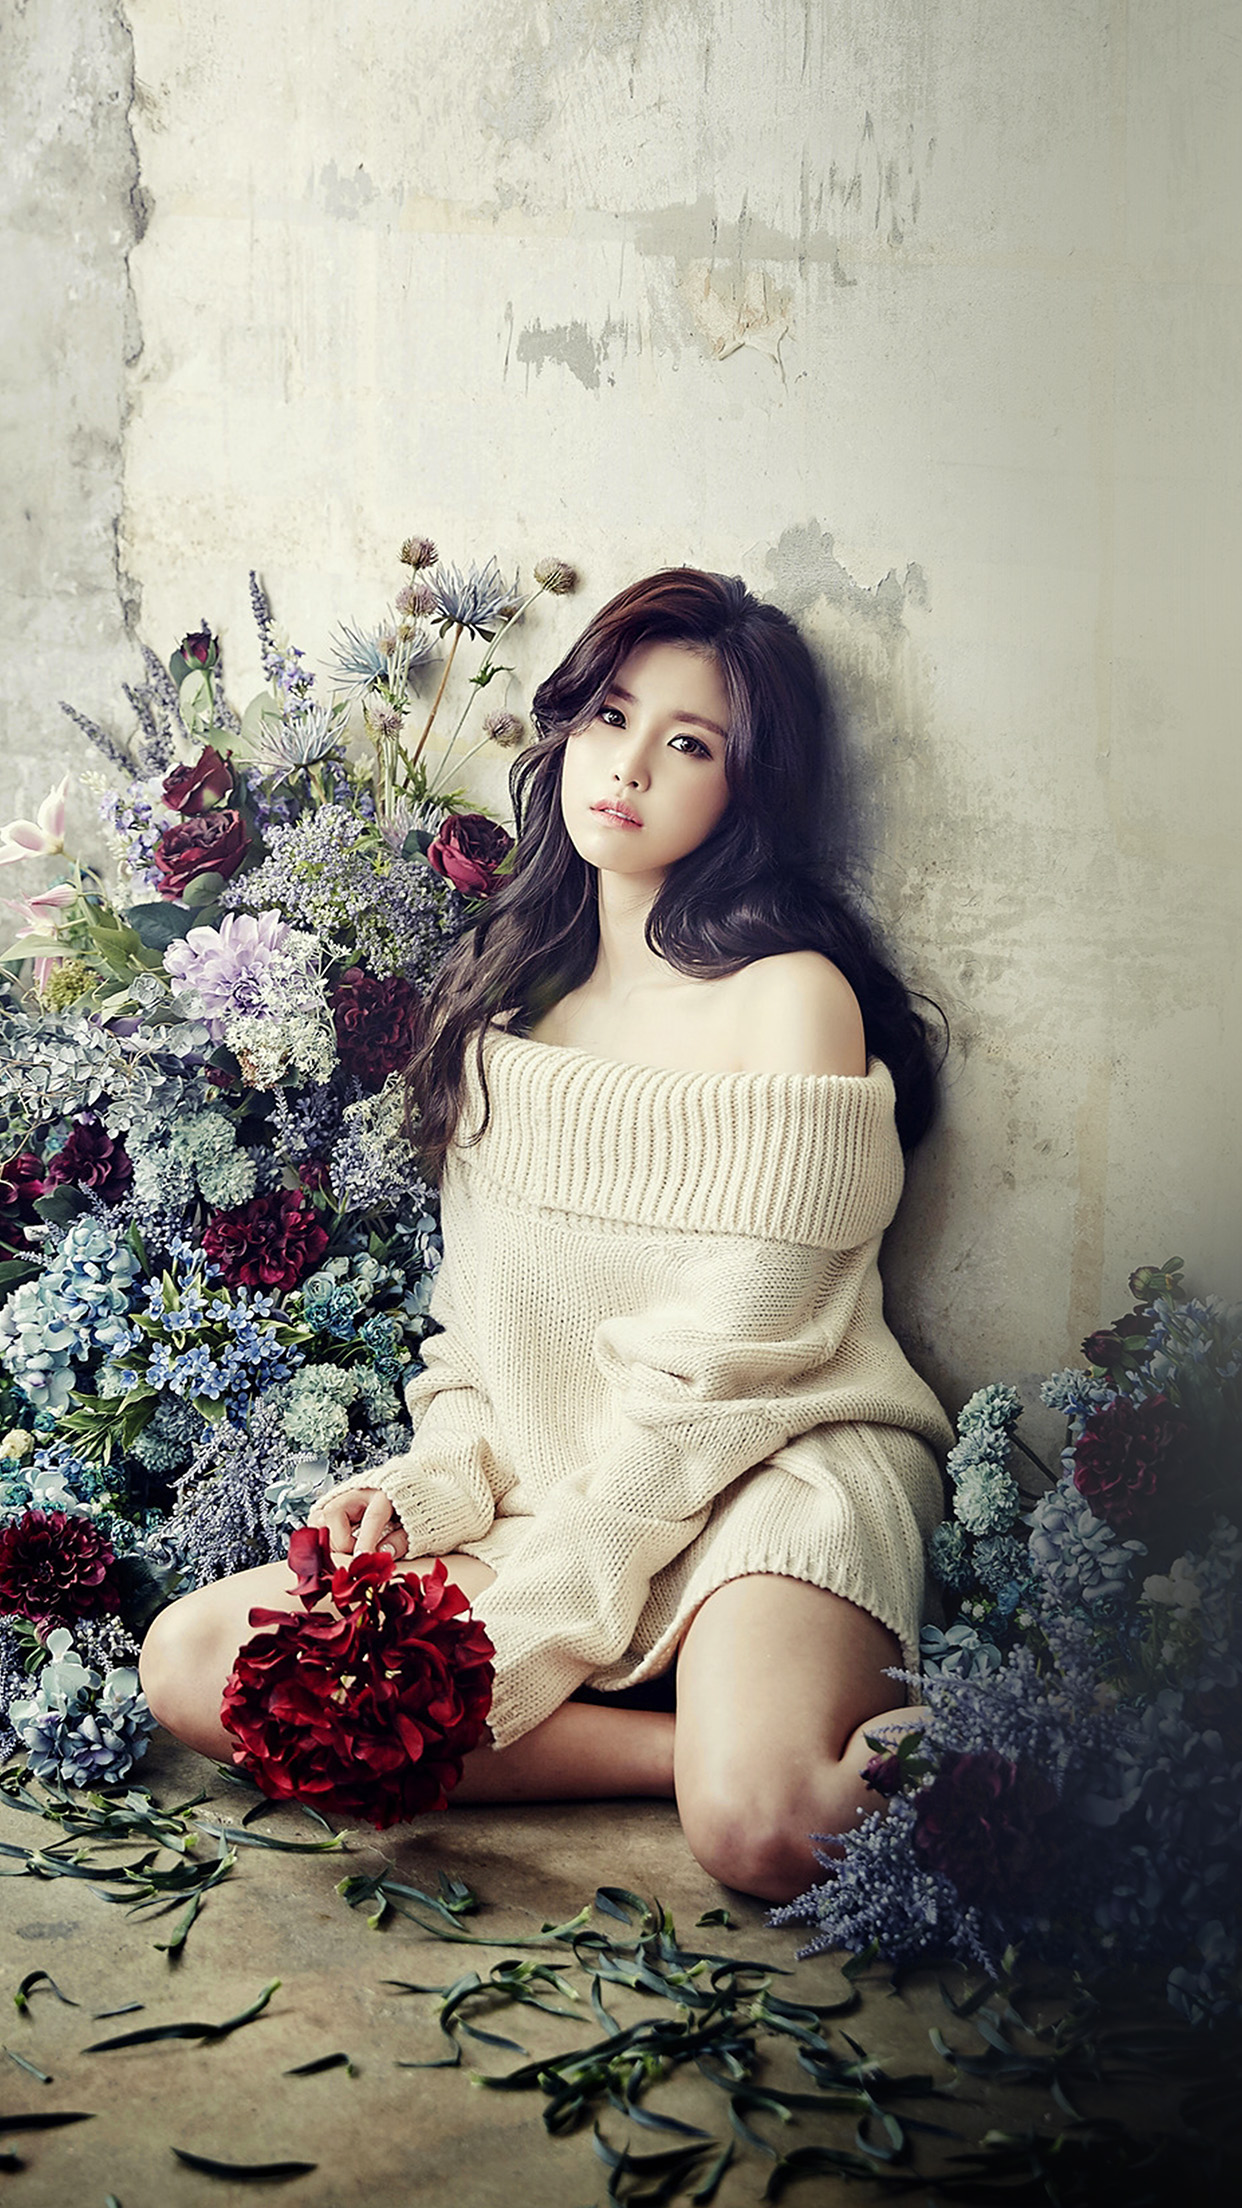 Flower Girl Hyosung Girl Kpop Celebrity Android wallpaper